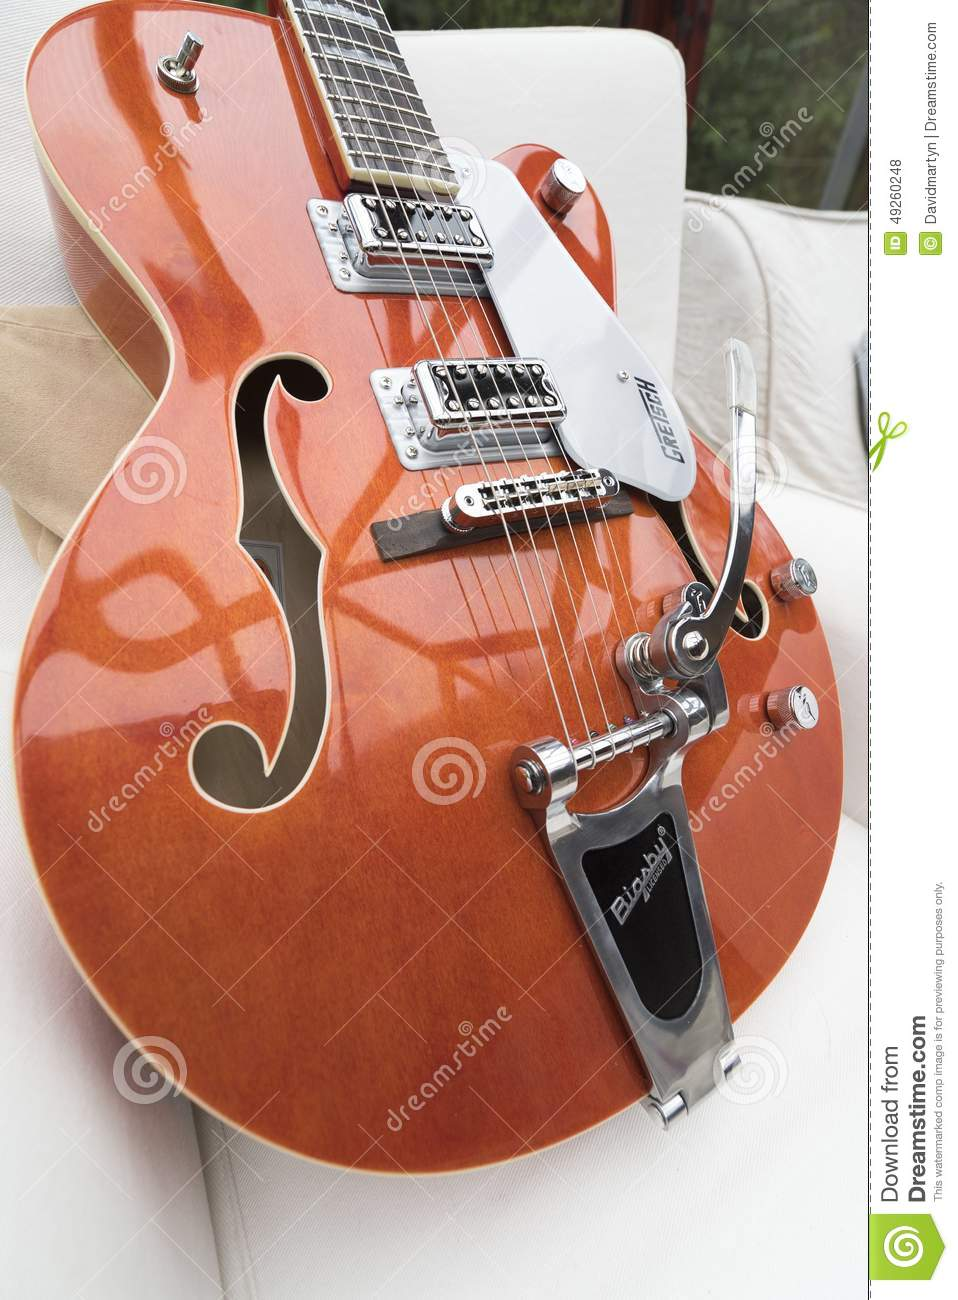 Guitar Editorial Stock Photo Image Of Electric Blues 49260248